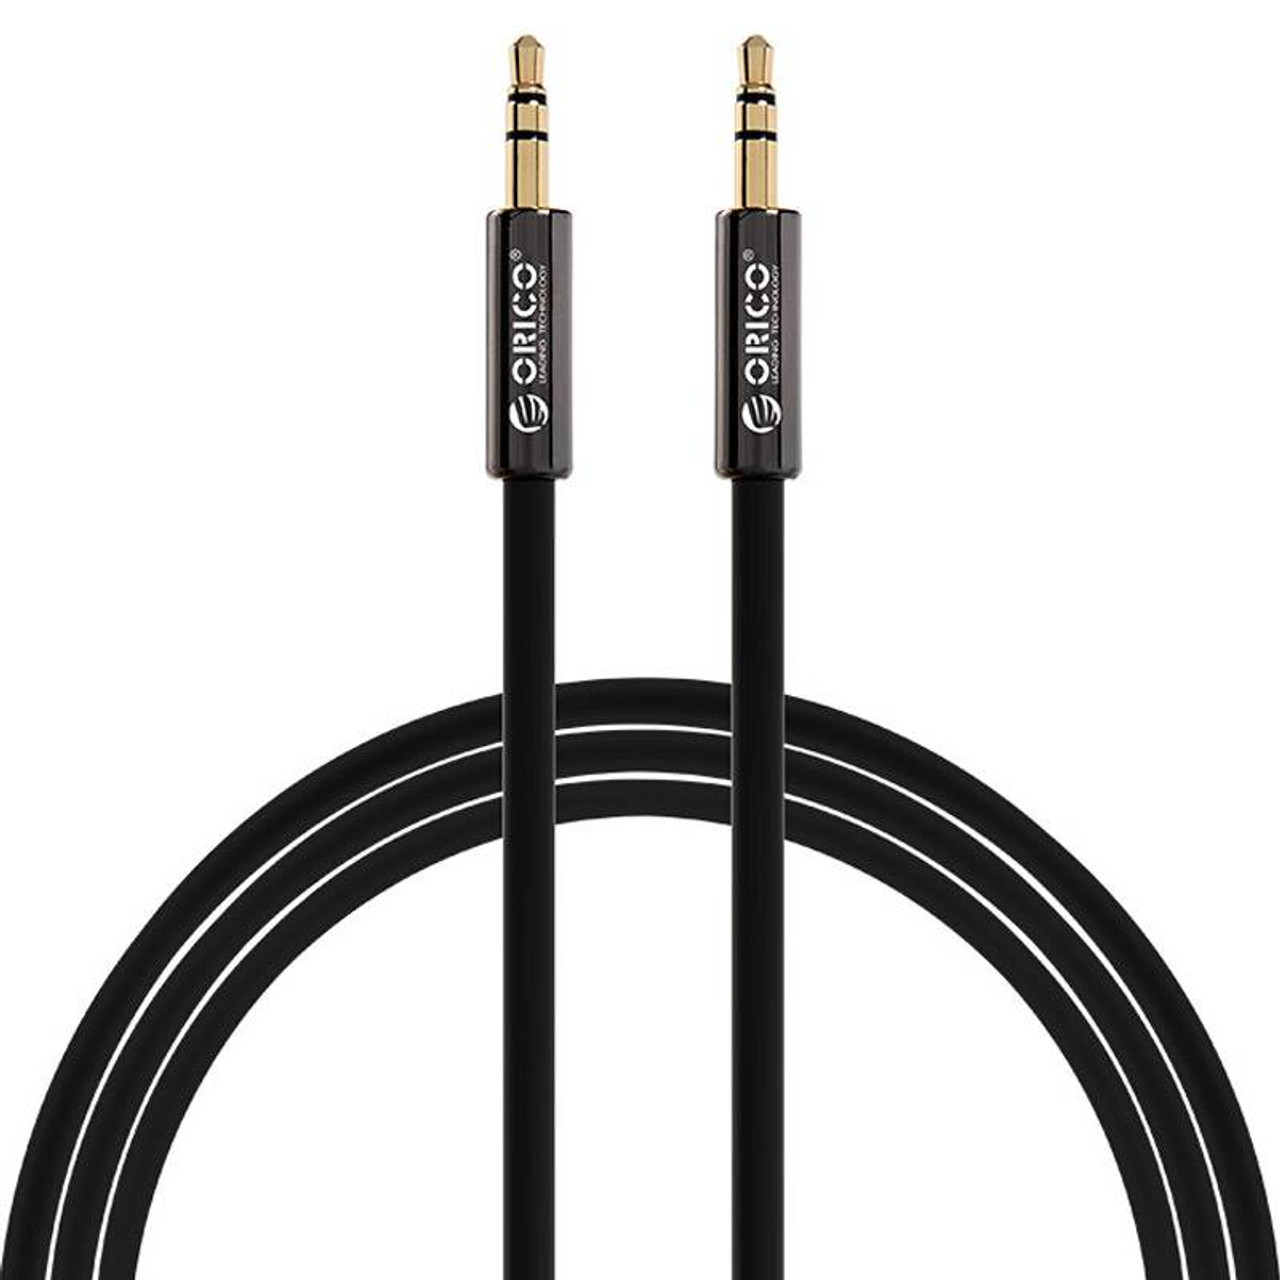 Image for Orico 3.5mm Male to Male AUX Cable 1.5 Meter CX Computer Superstore